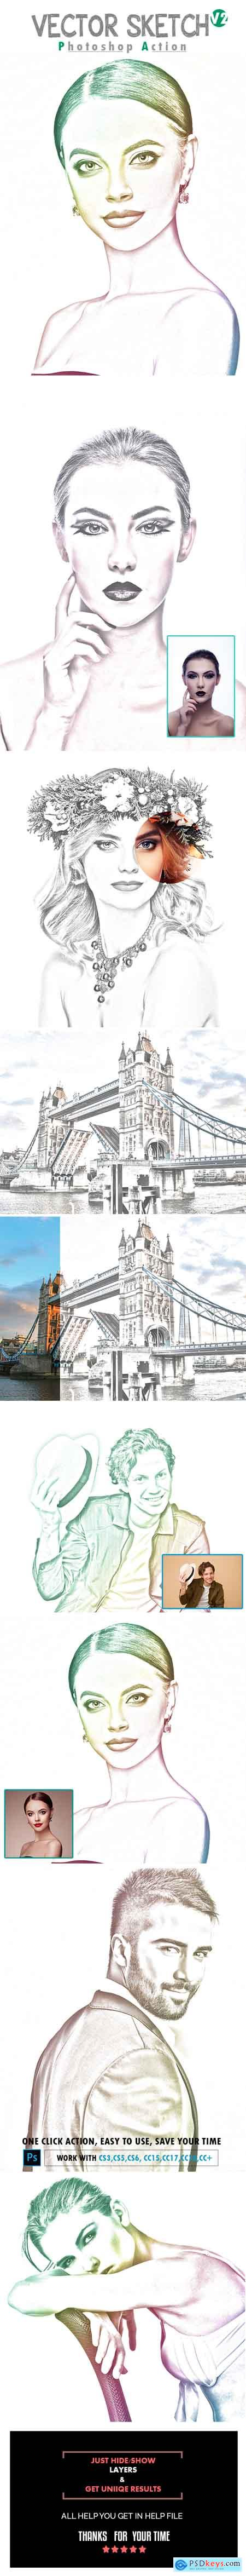 Graphicriver Vector Sketch V2 Photoshop Action